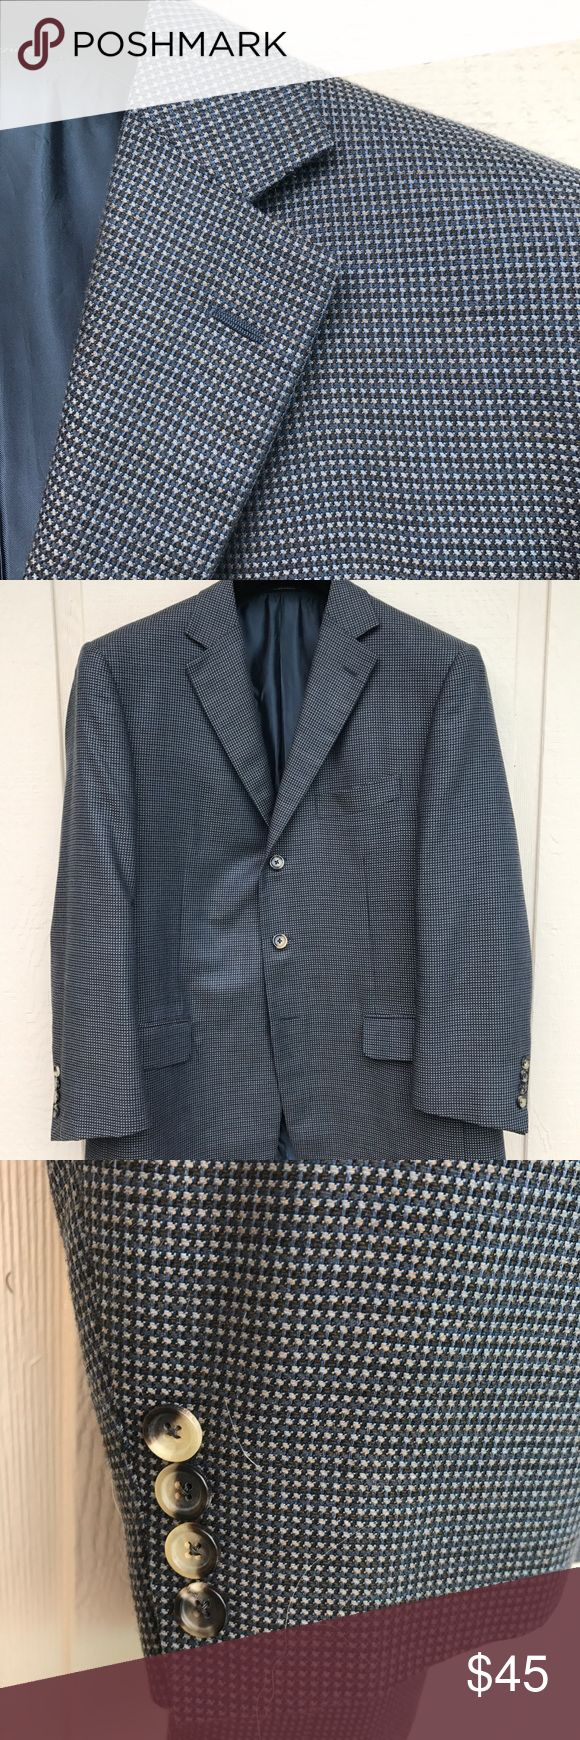 🌼🌼 Italian Pal Zileri blue sport coat 42S 🌼🌼 Beautiful dark and light blue houndstooth weave is in this Italian made sport coat from Pal Zileri. 42S. Gently worn. Pal Zileri Suits & Blazers Sport Coats & Blazers